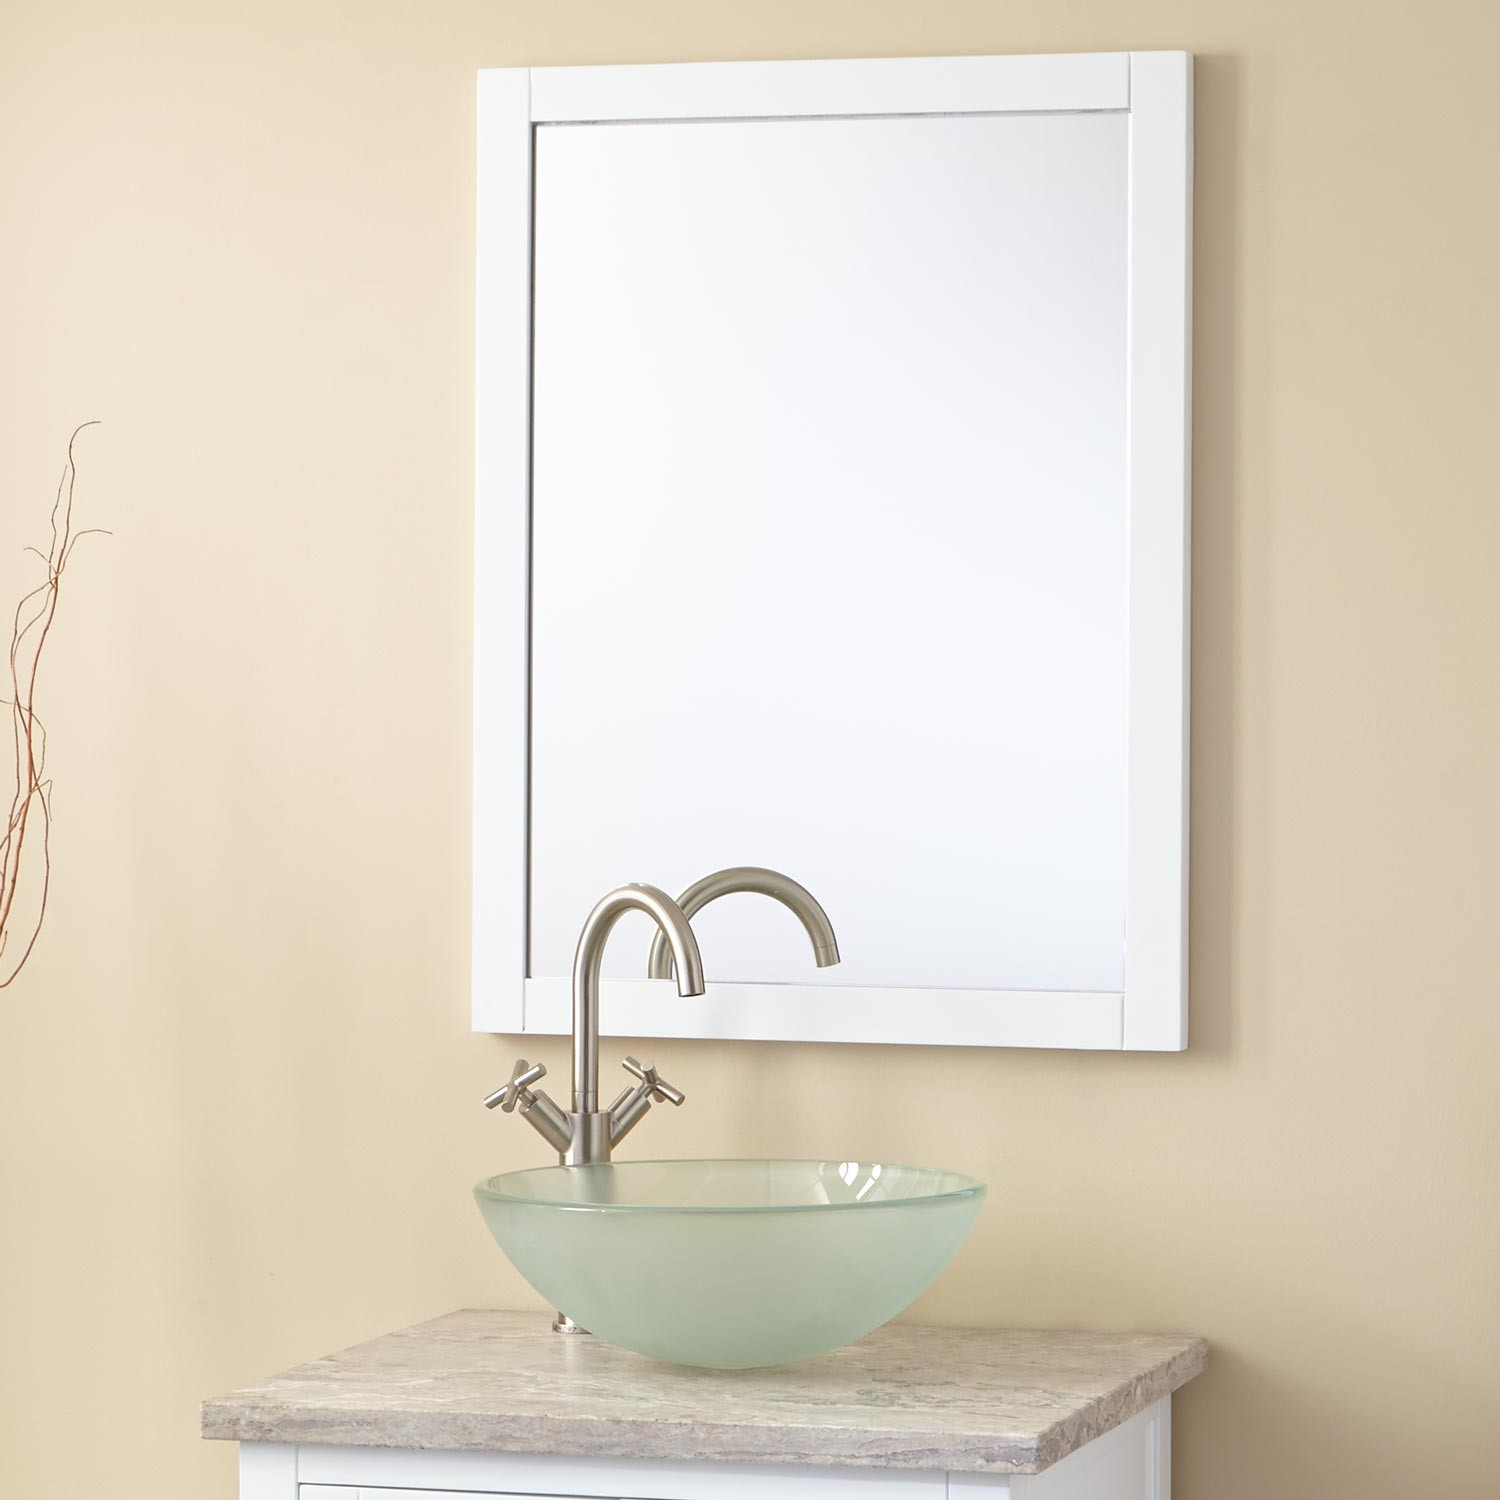 Picture of: White Vanity Mirror on Wall